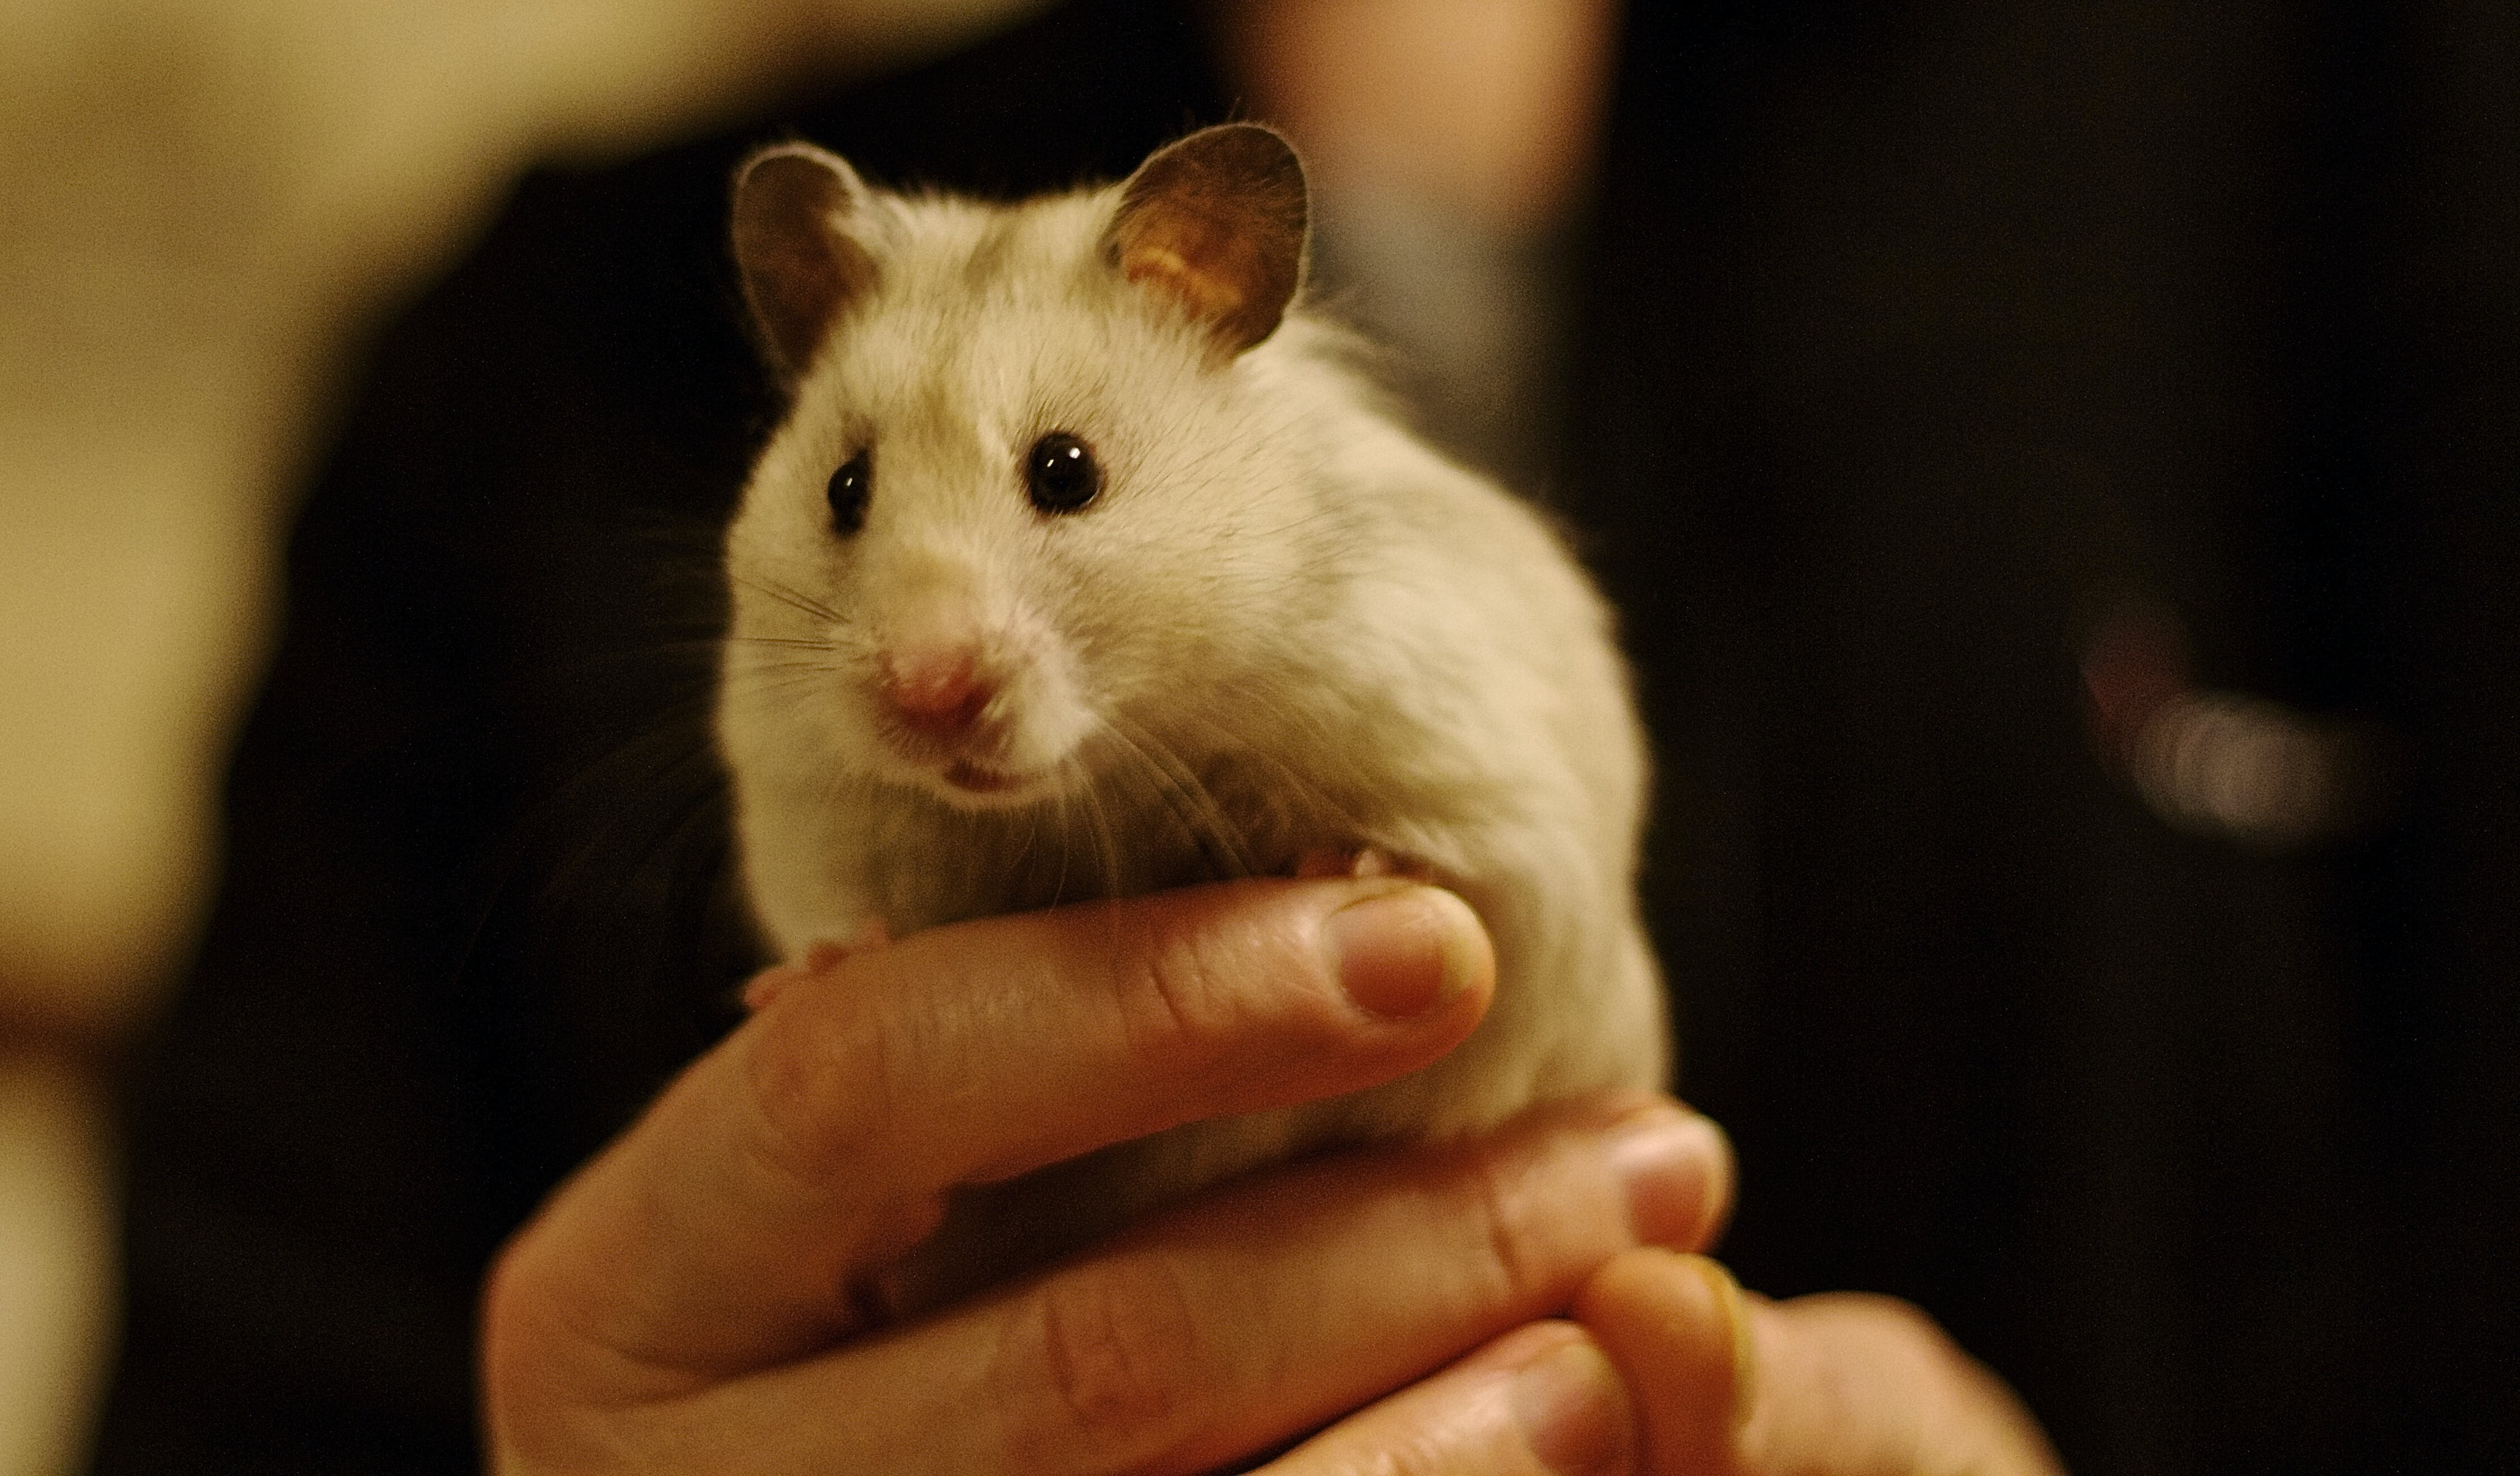 Free stock photo of pet hamster eyes cute syrianhamster cream